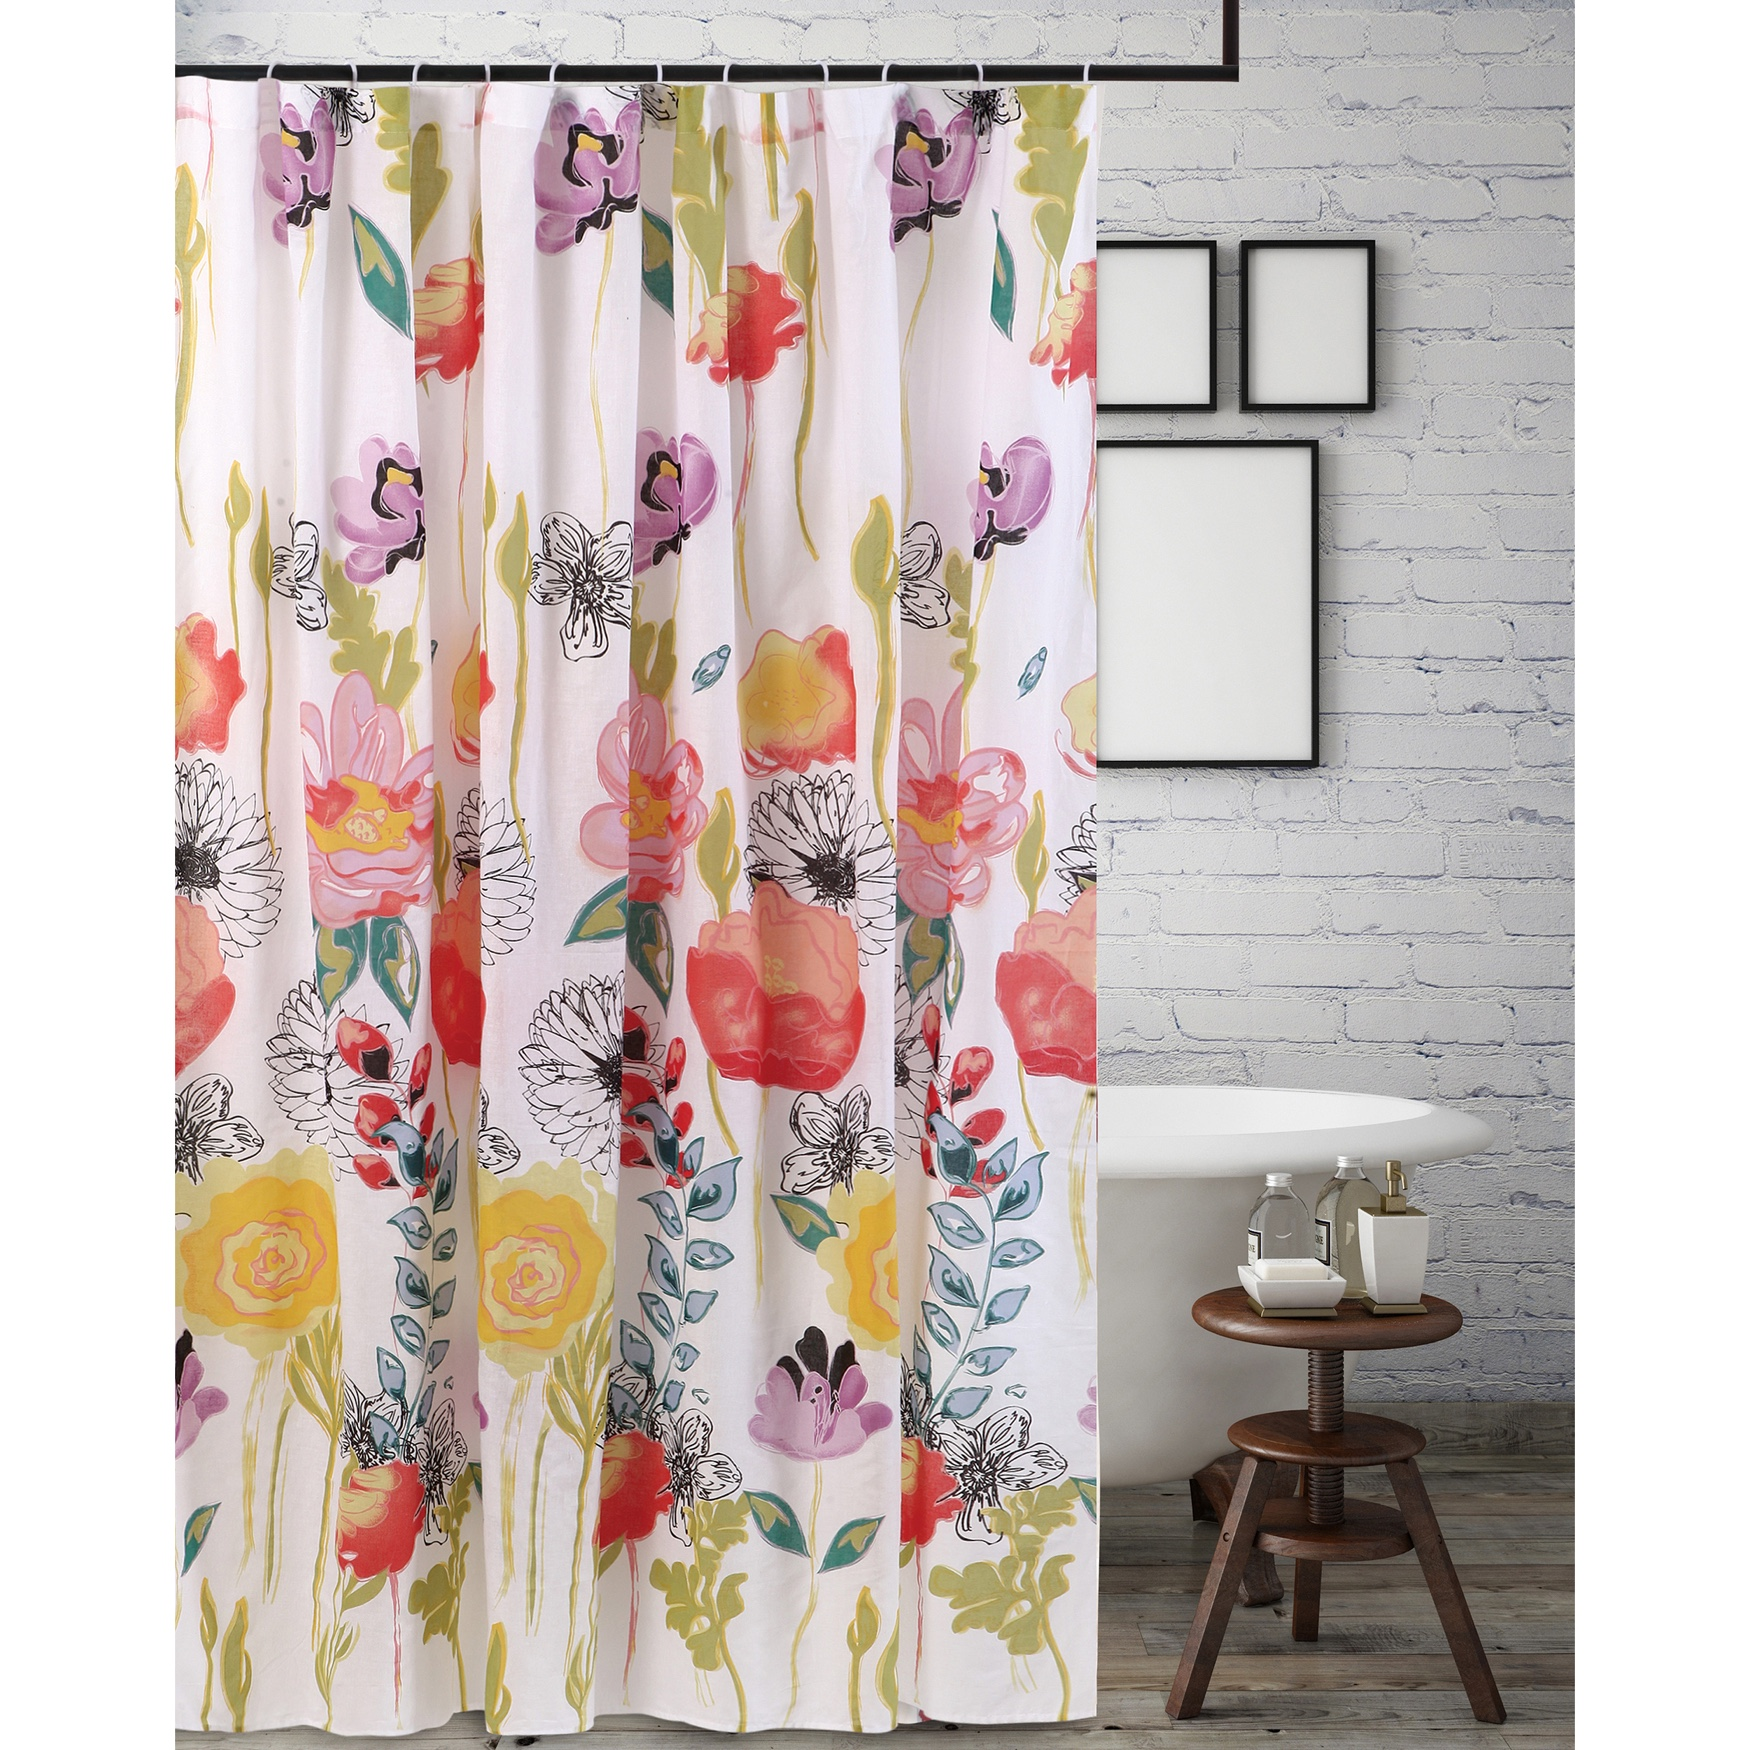 Watercolor Dream Shower Curtain by Greenland Home Fashions,